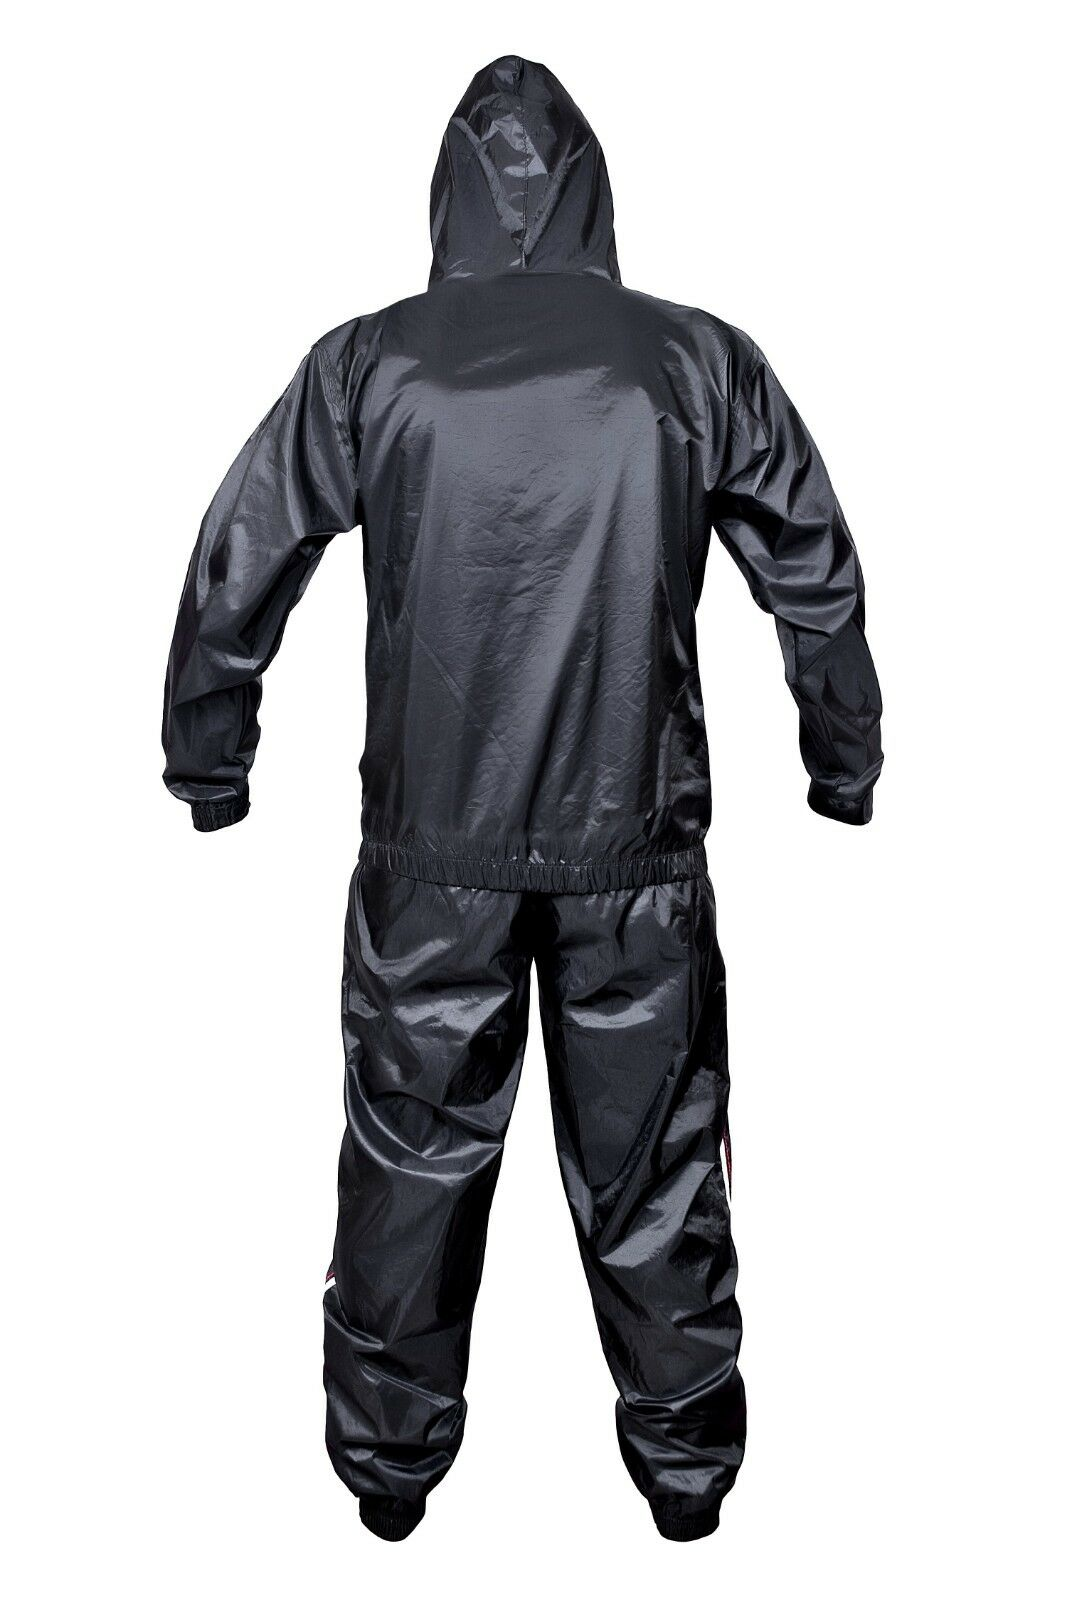 Heavy Duty DEFY Sauna Sweat Suit Exercise Gym Suit Fitness Weight Loss Anti-Rip